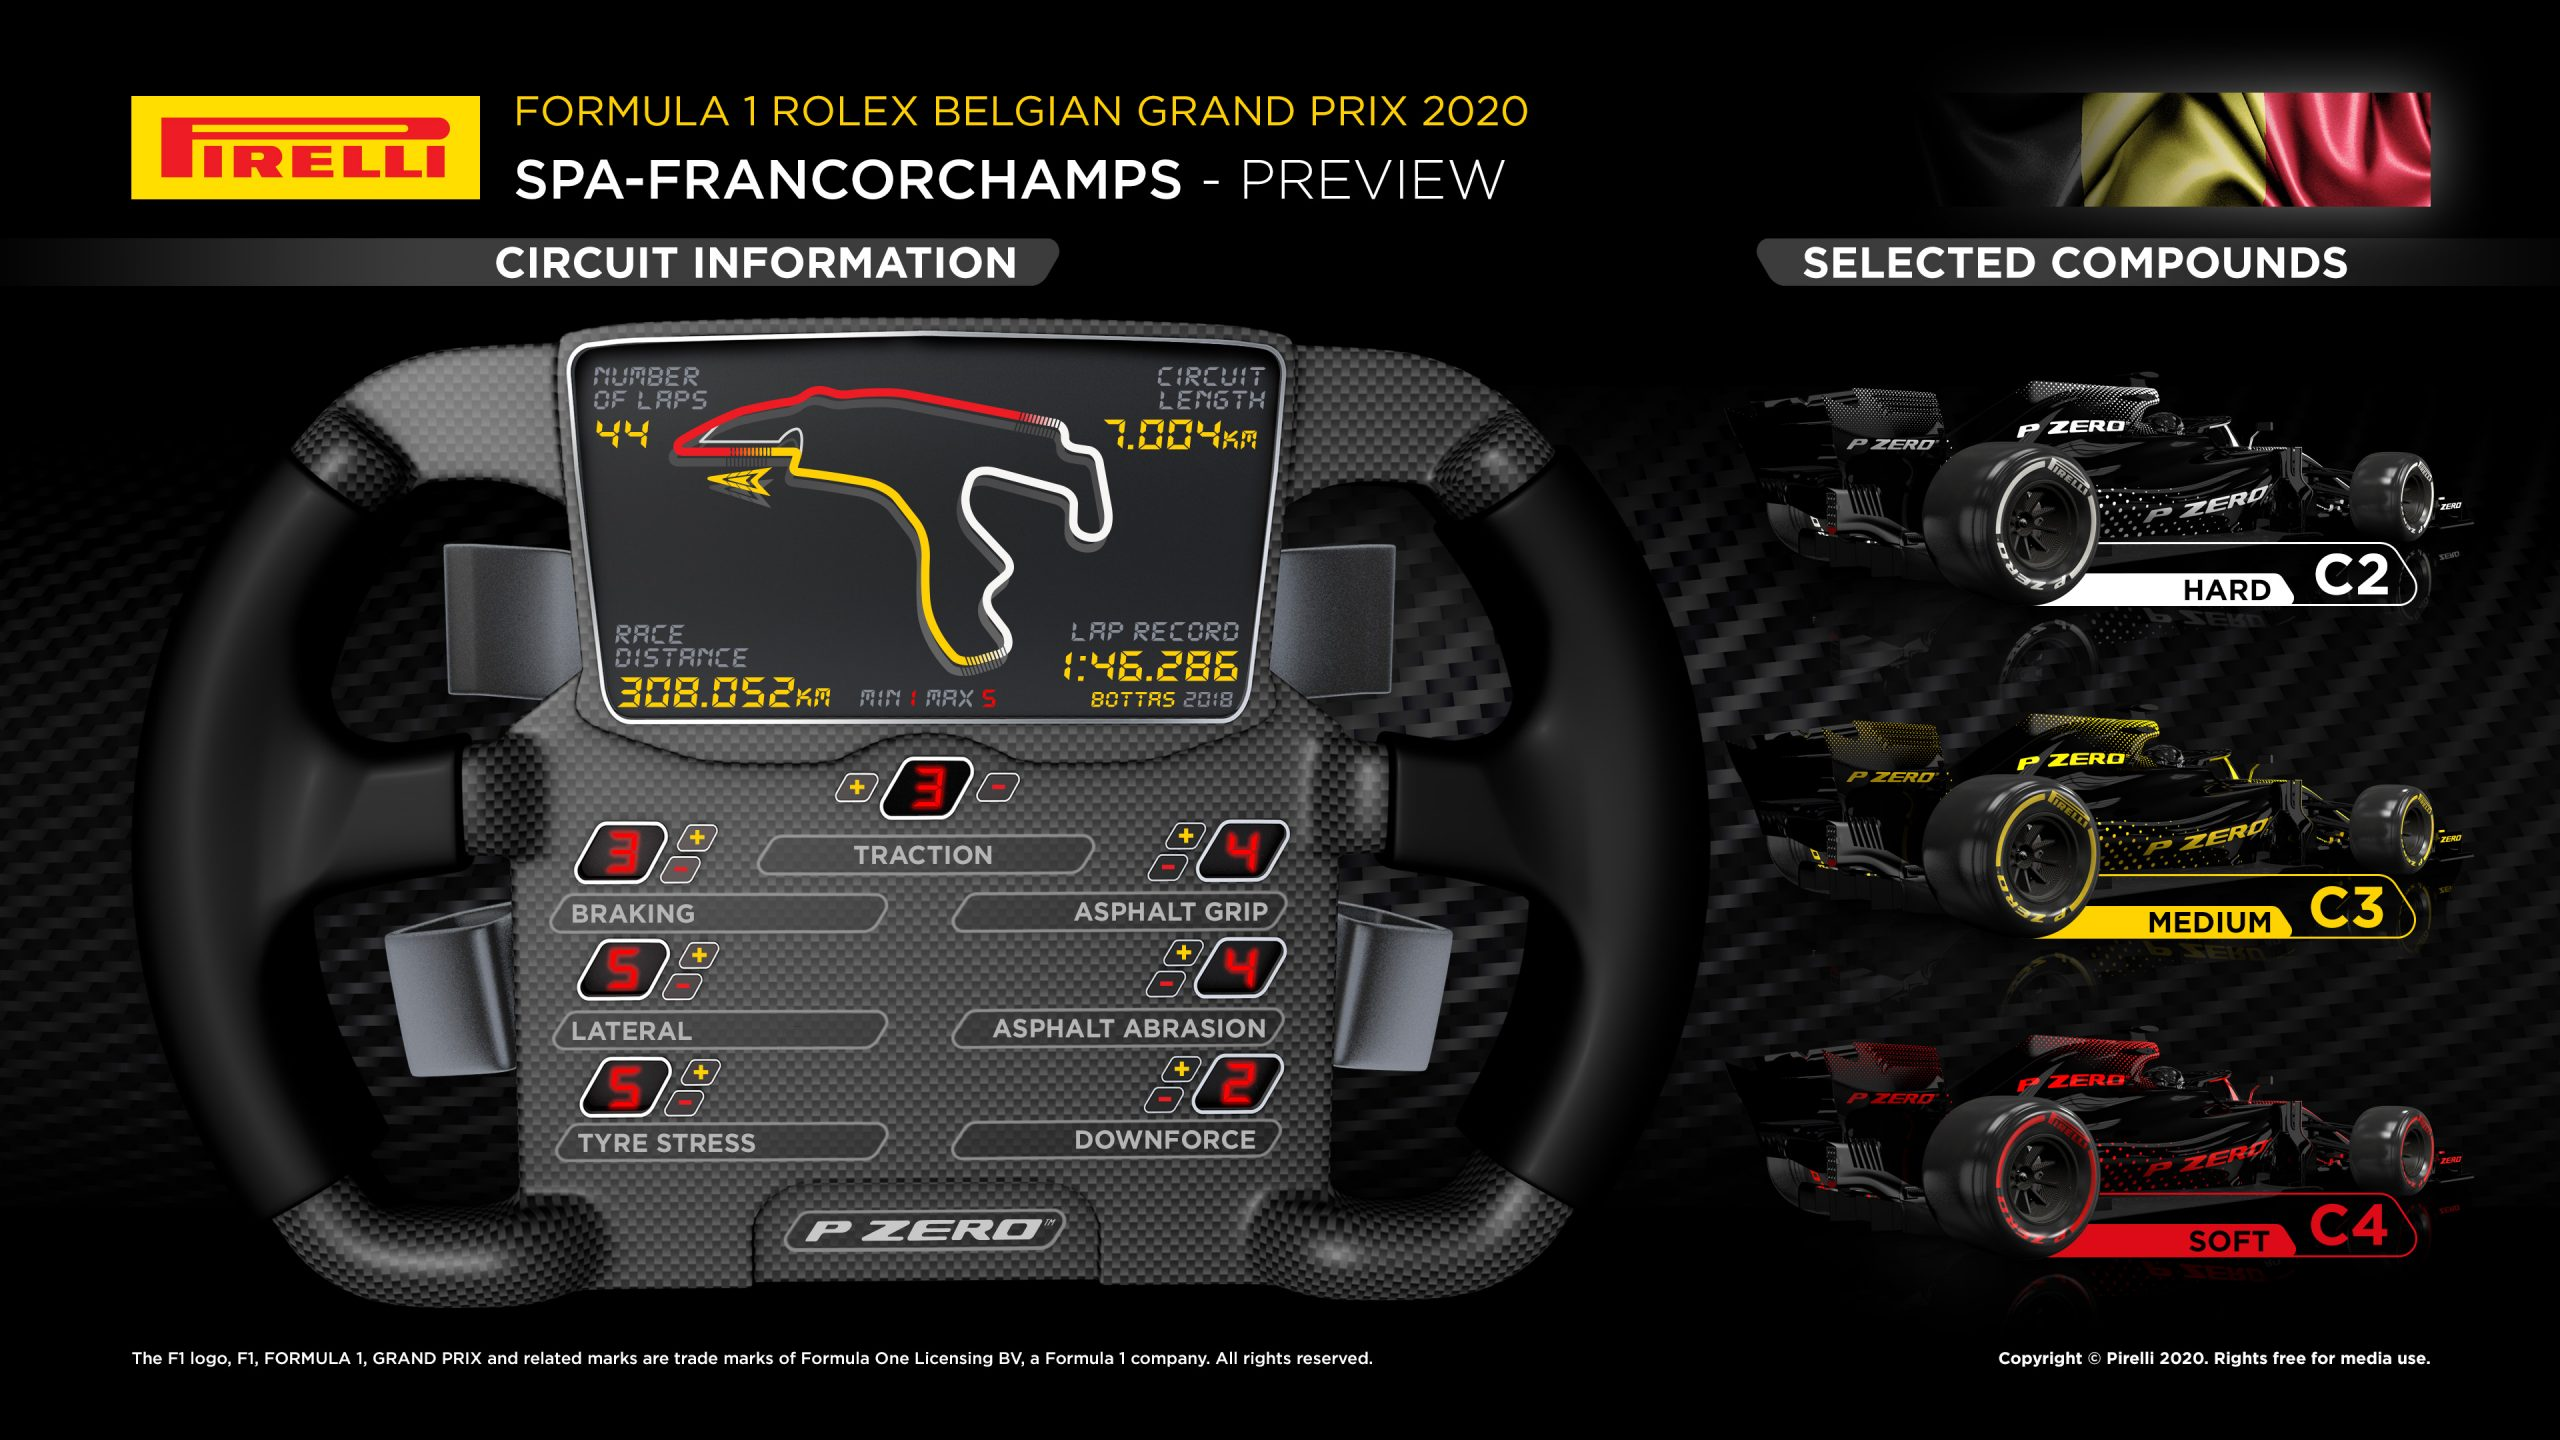 Belgian F1 GP preview infographic